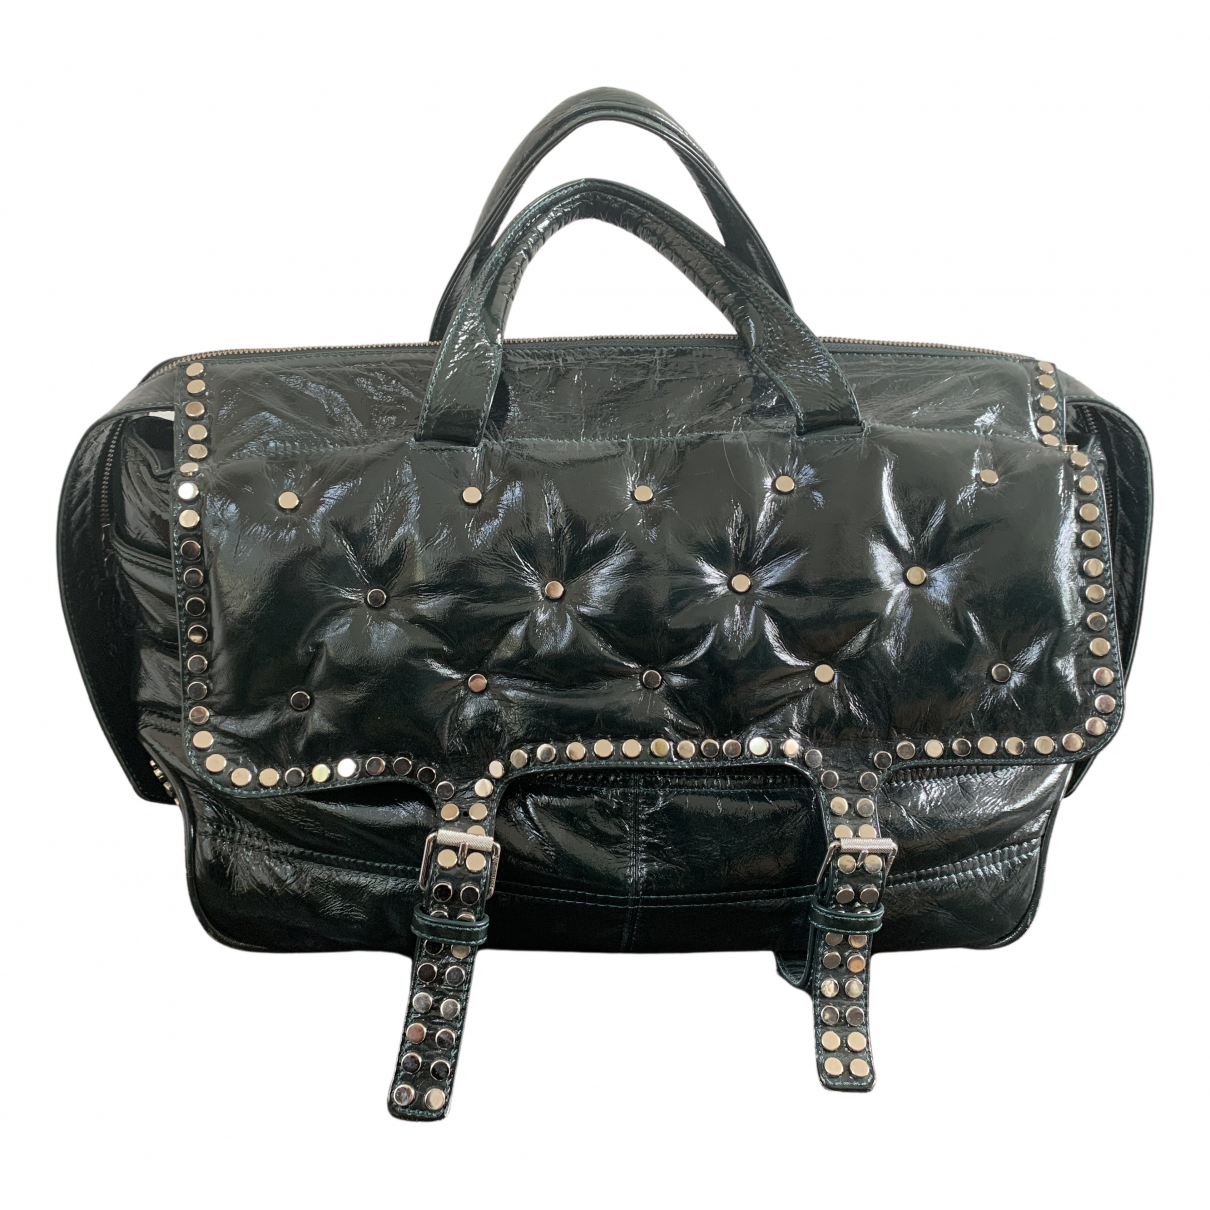 Zadig & Voltaire \N Green Patent leather handbag for Women \N